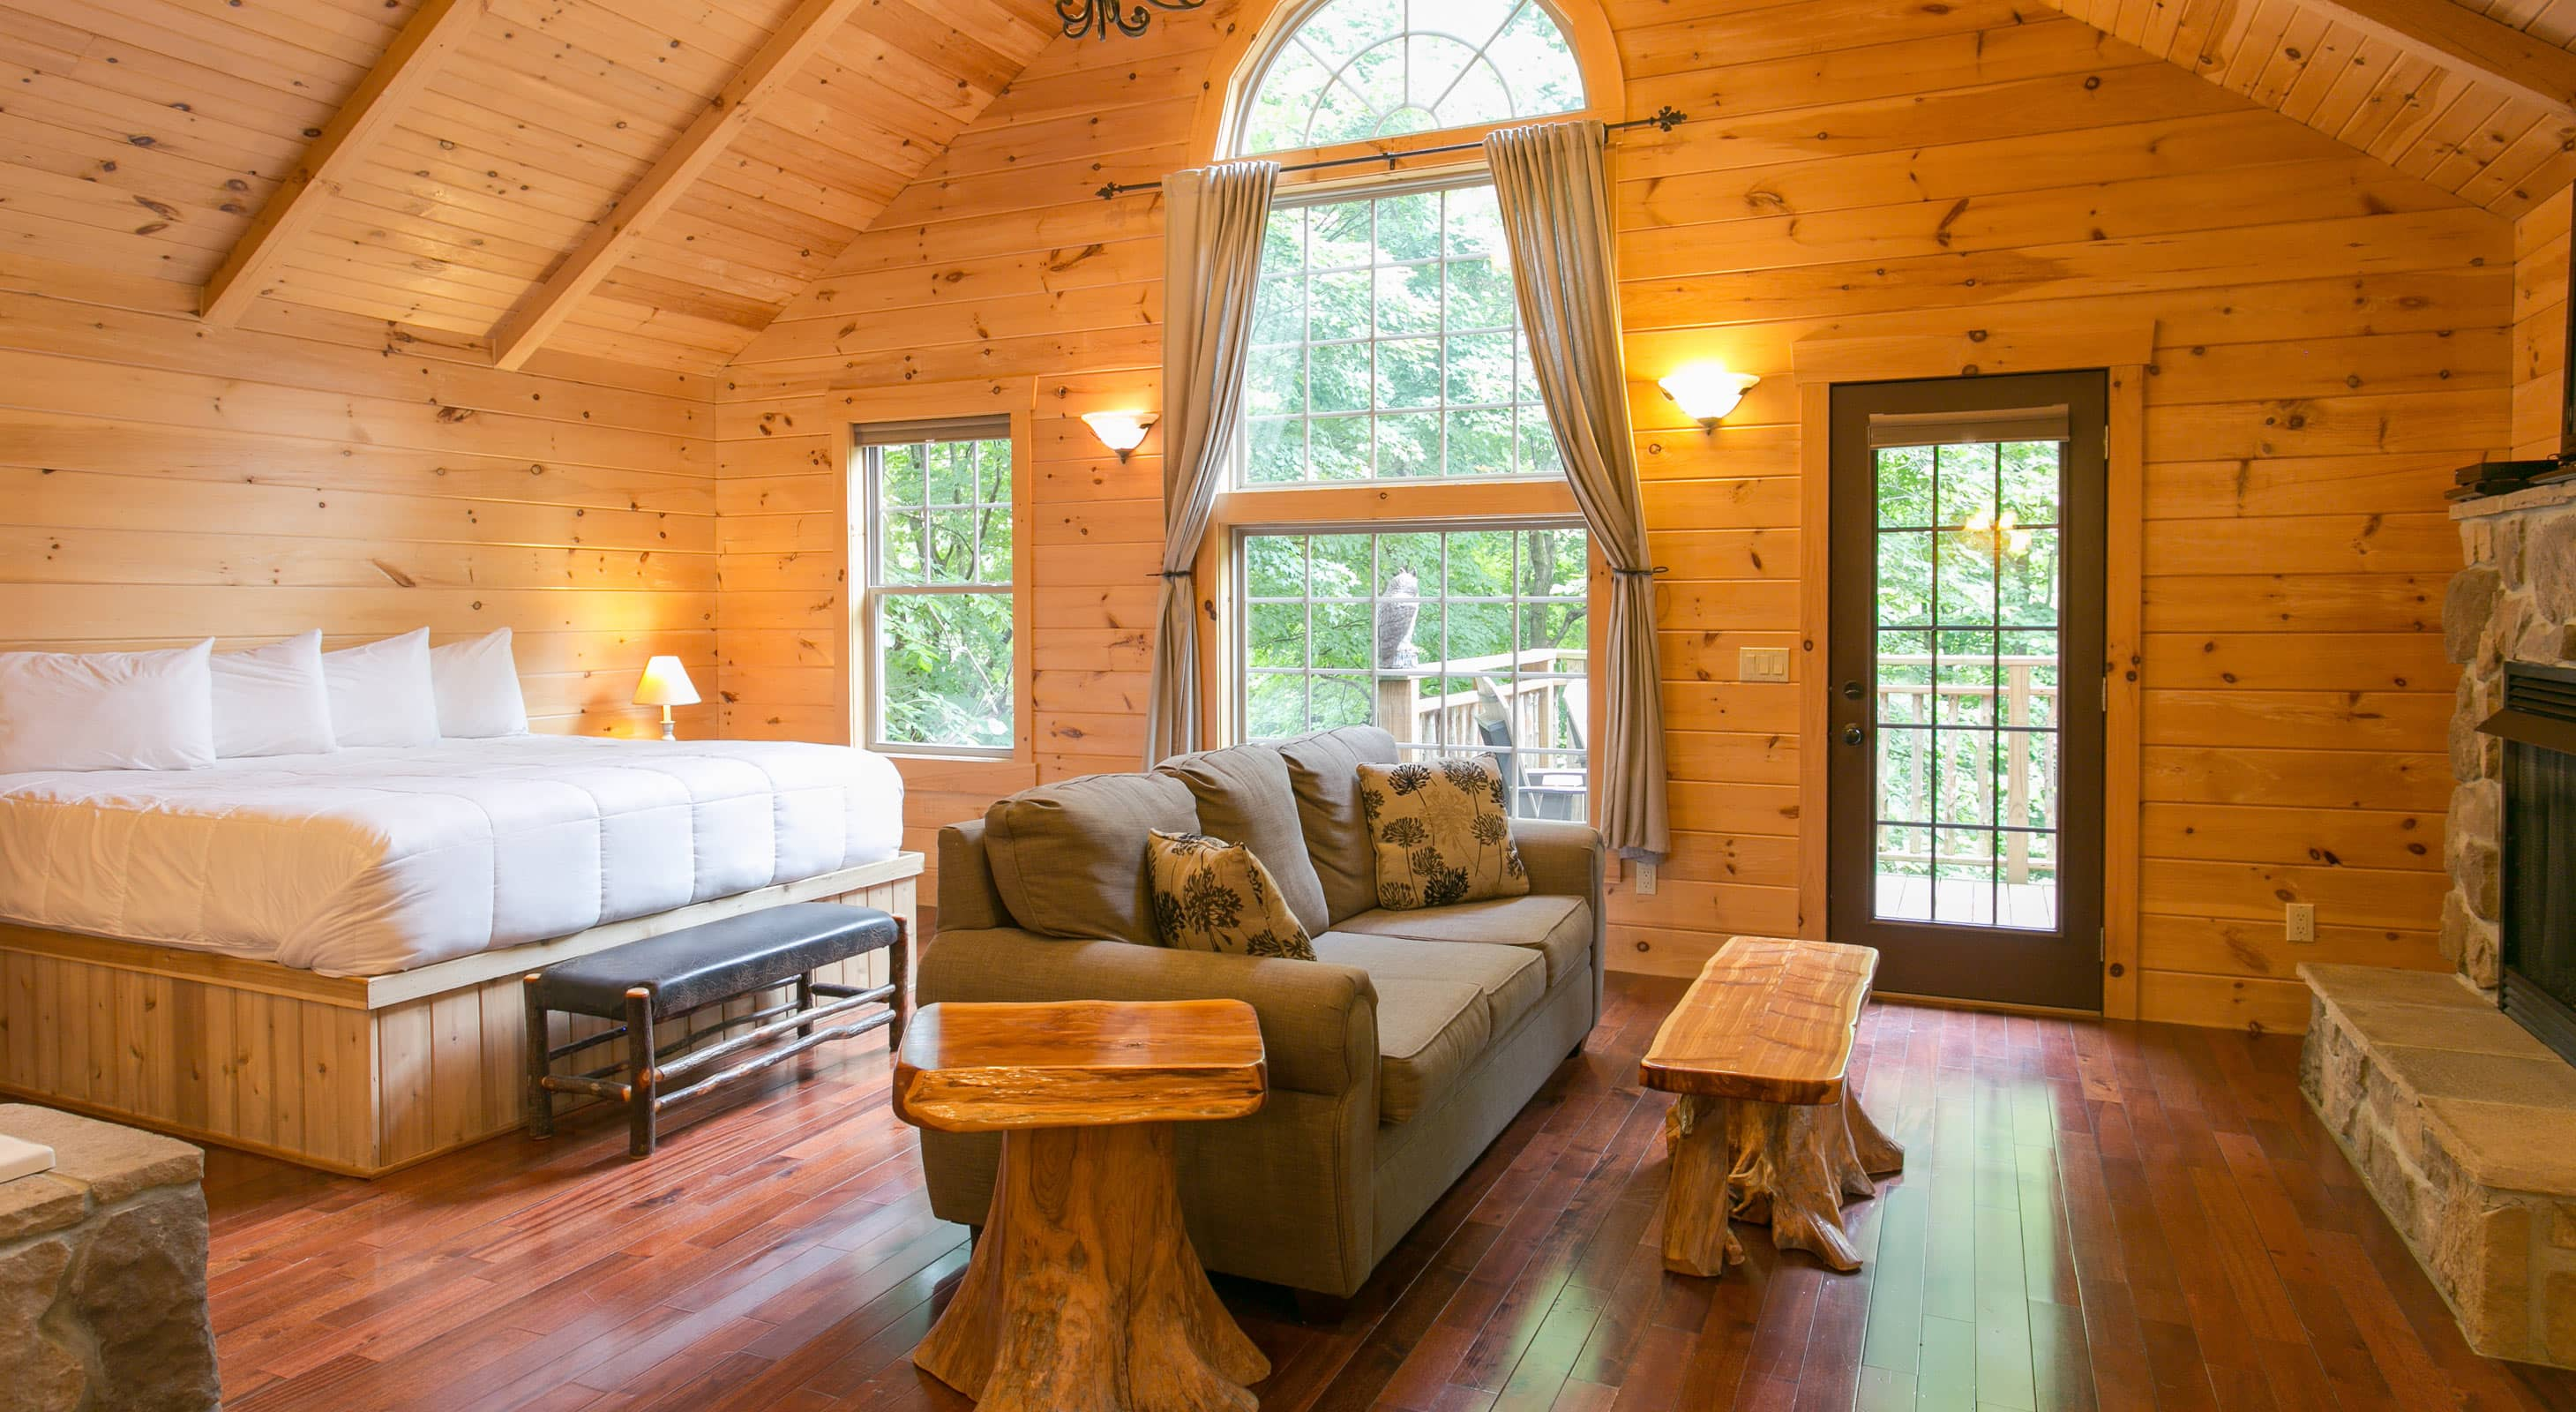 Interior of Treehouse with bed, couch, & stone detail